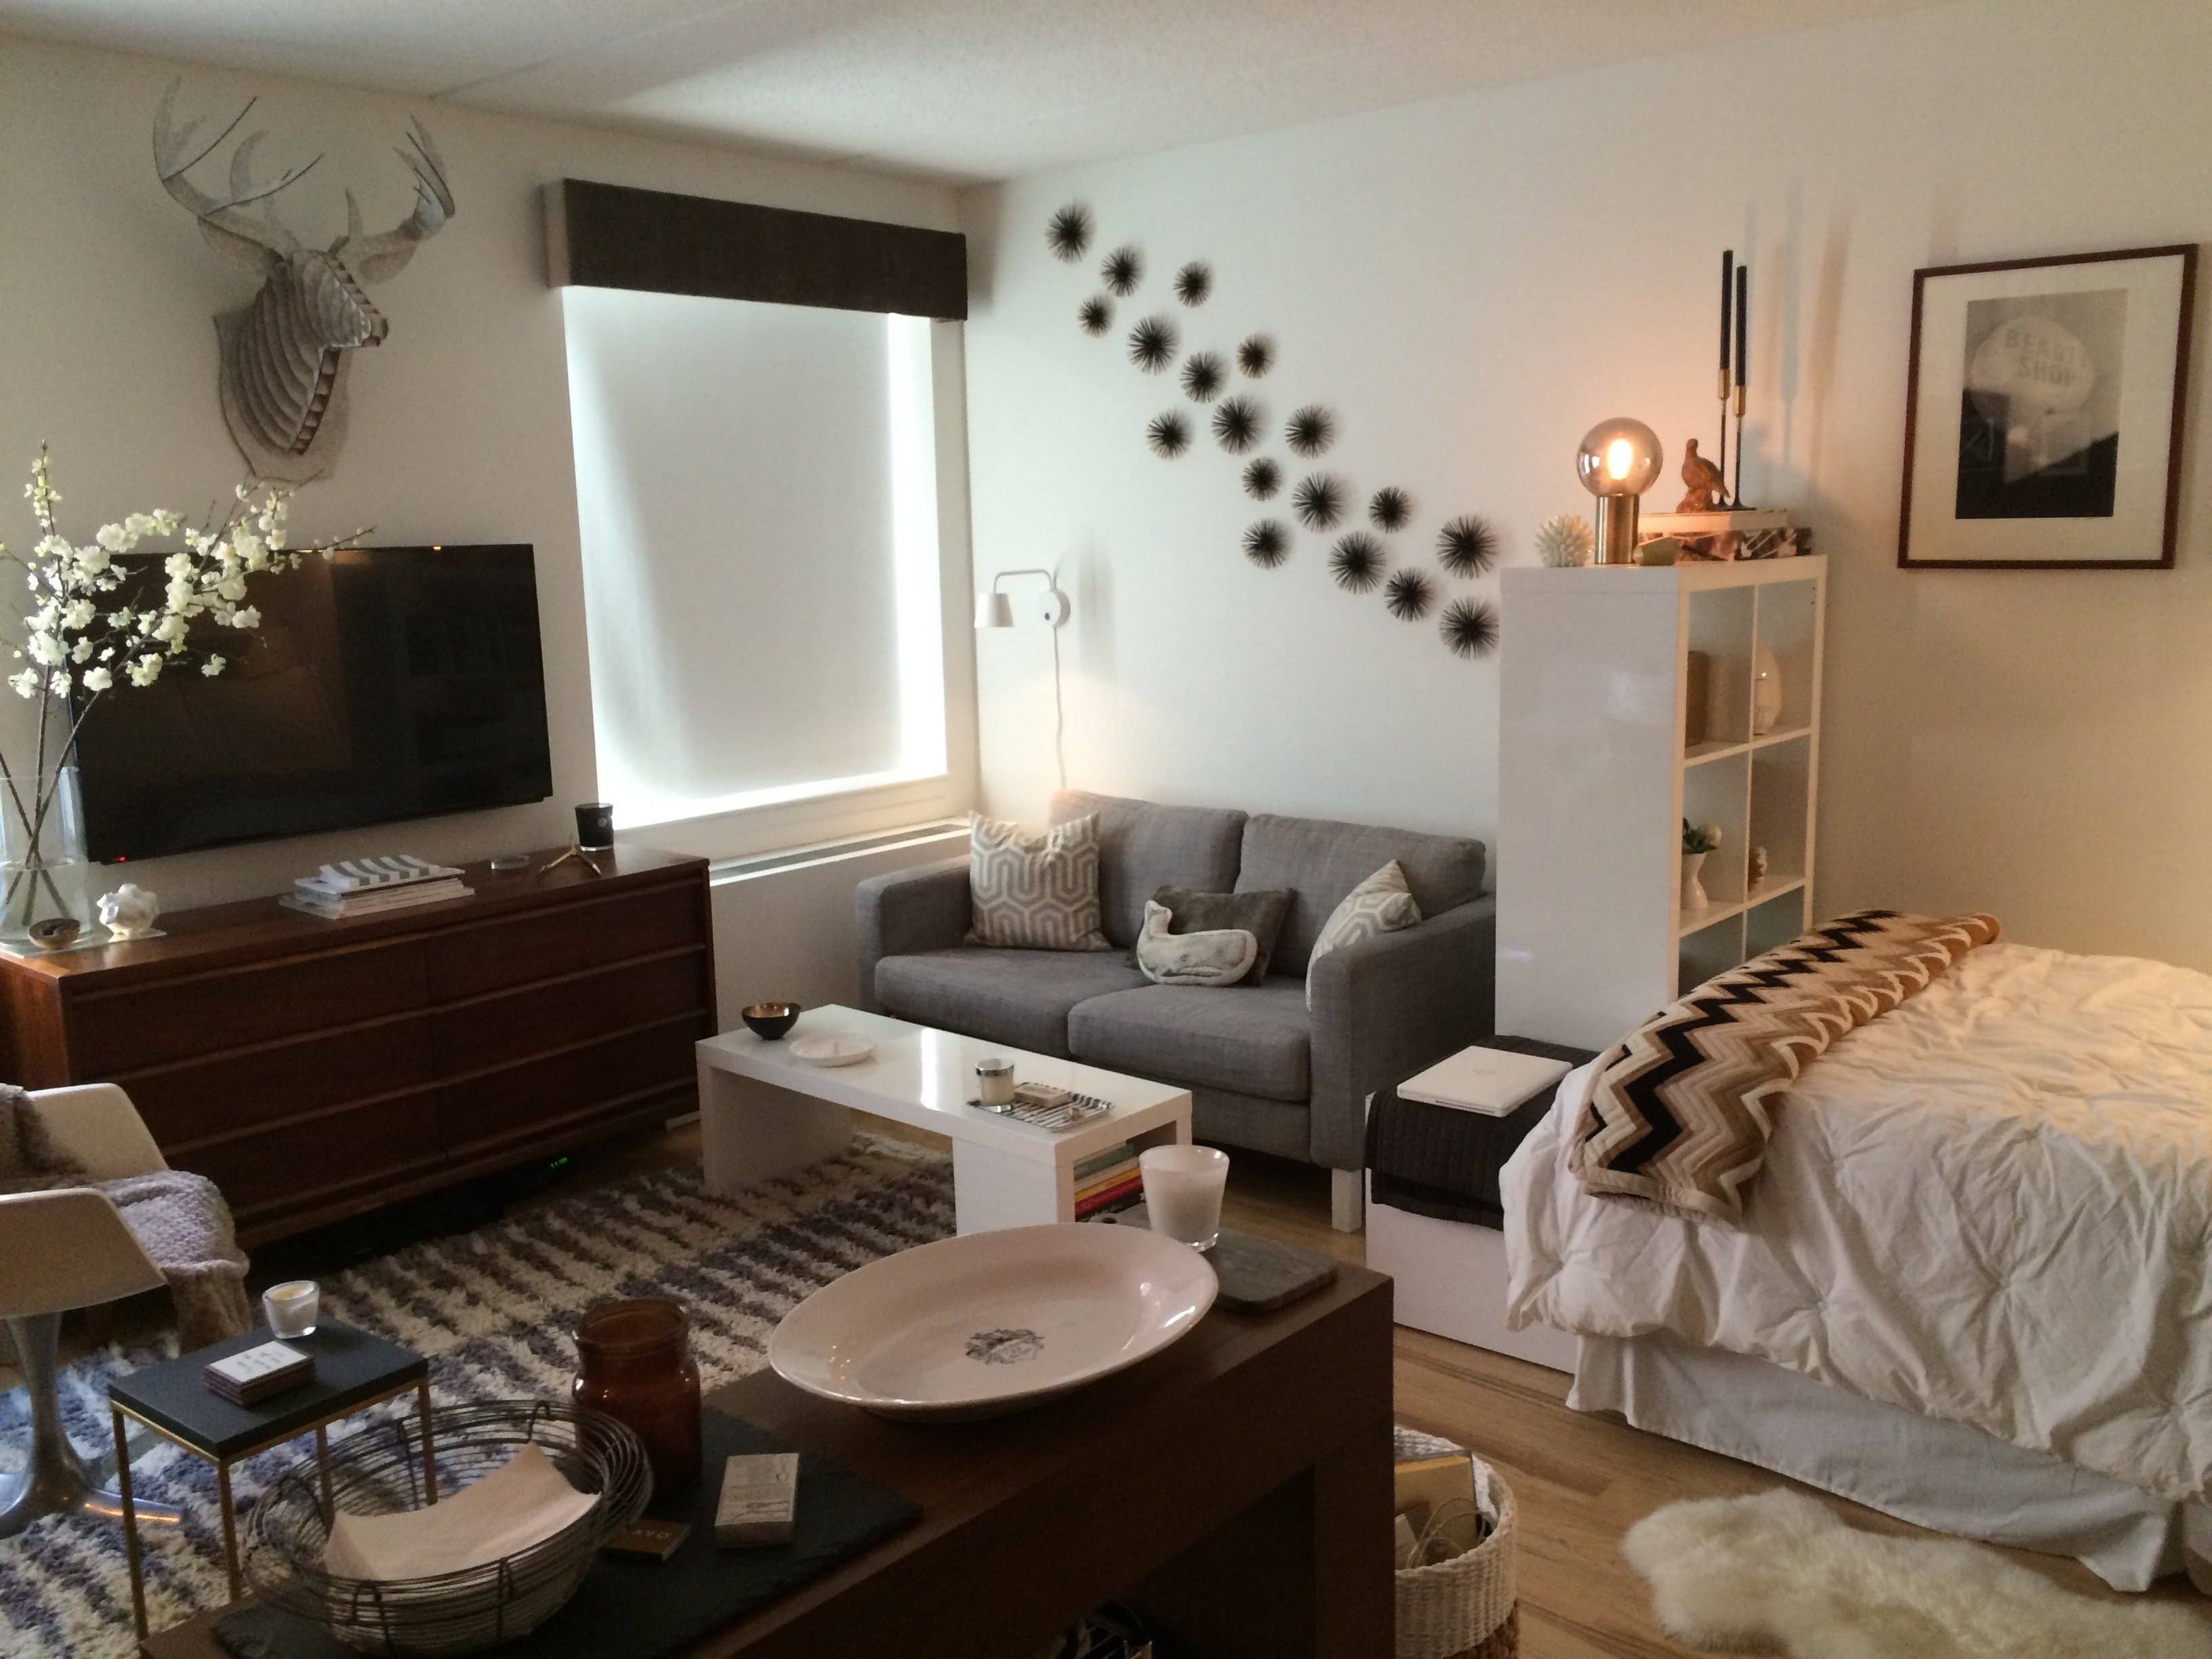 Great 5 Studio Apartment Layouts That Work U2014 Renters Solutions